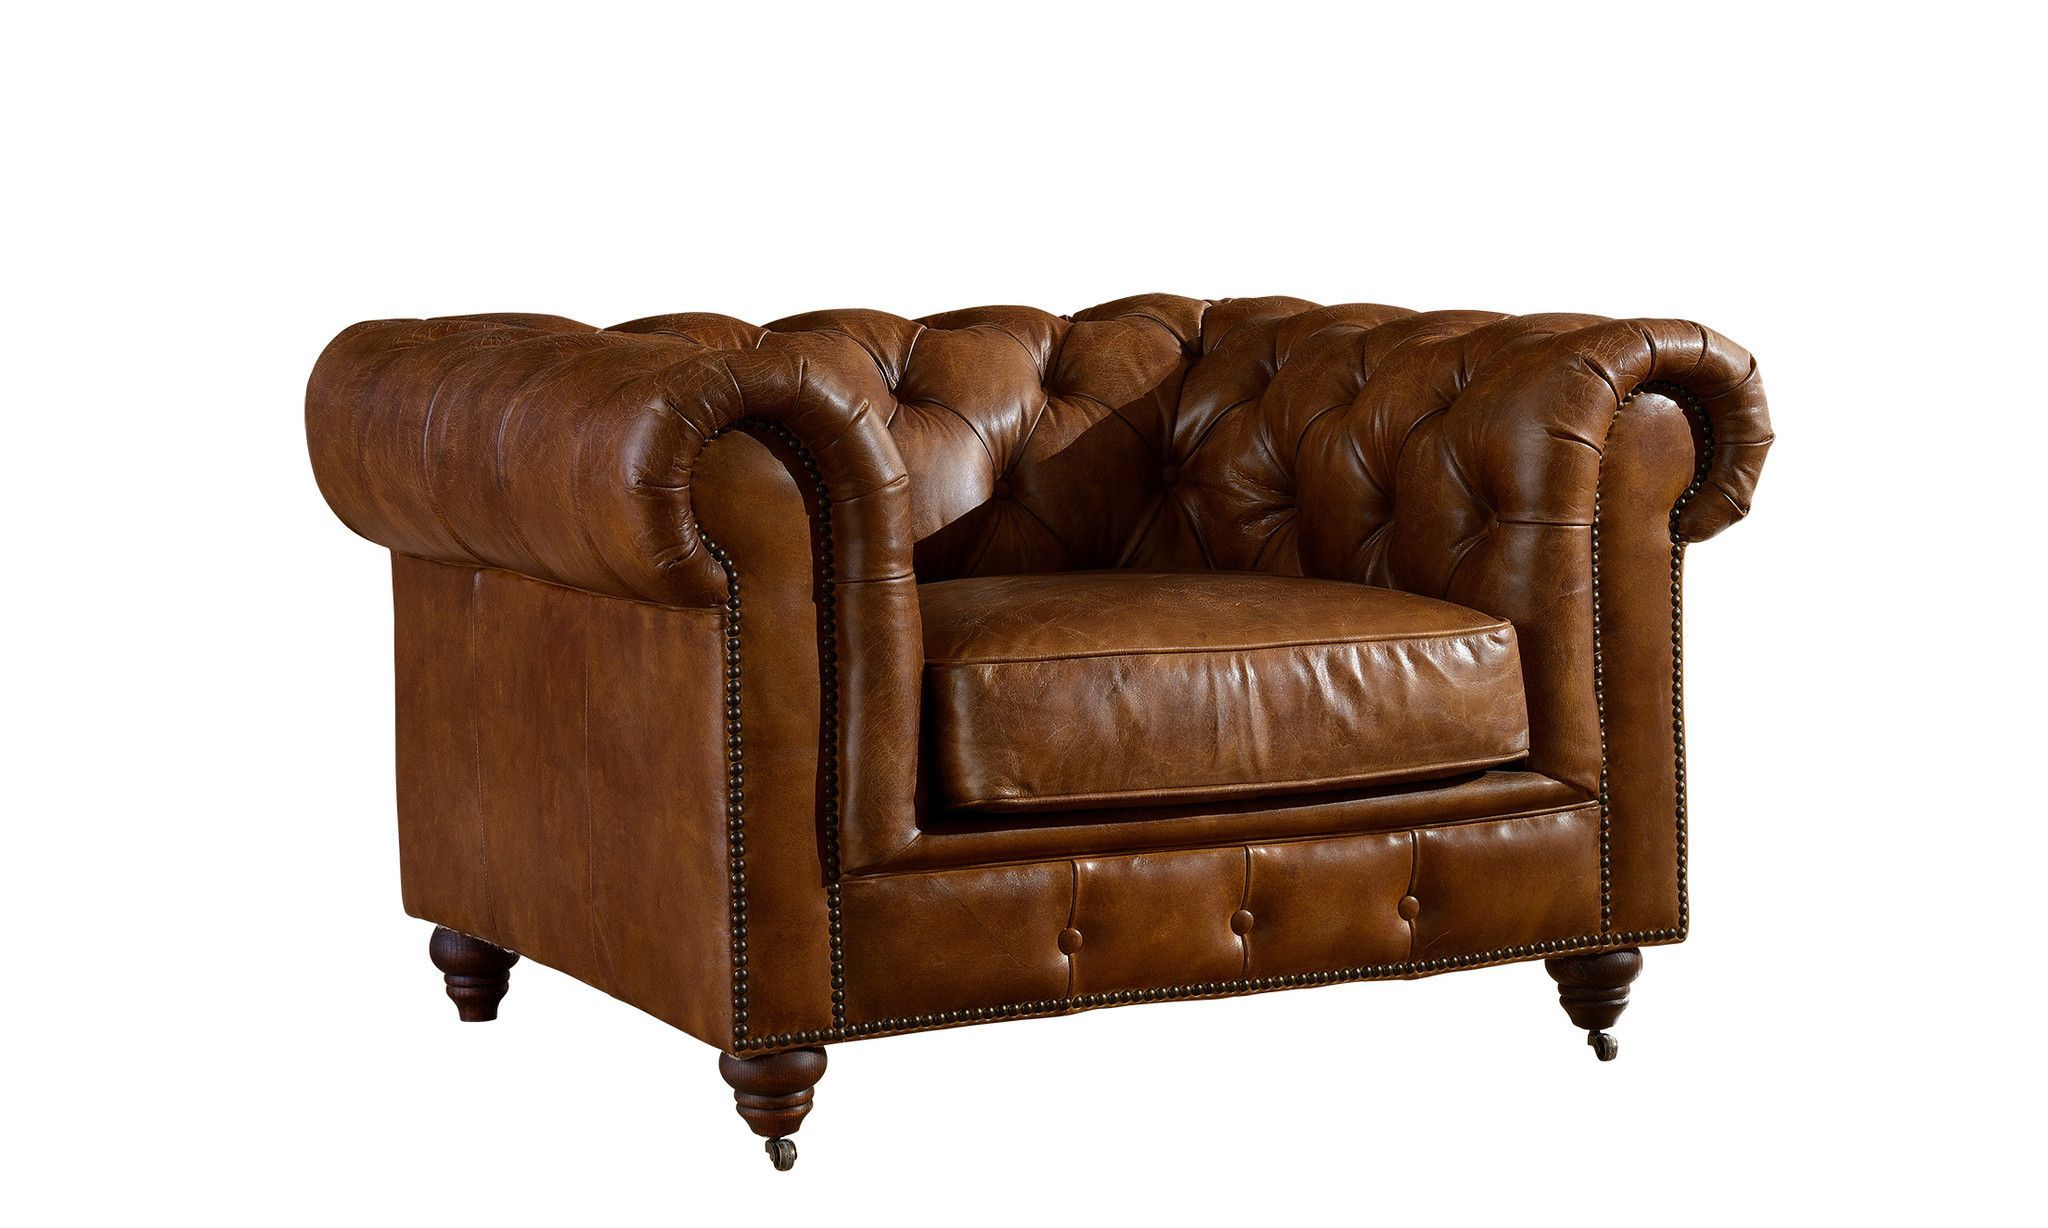 1be990051f1b Century Chesterfield Arm Chair - Light Brown Leather in 2019 ...